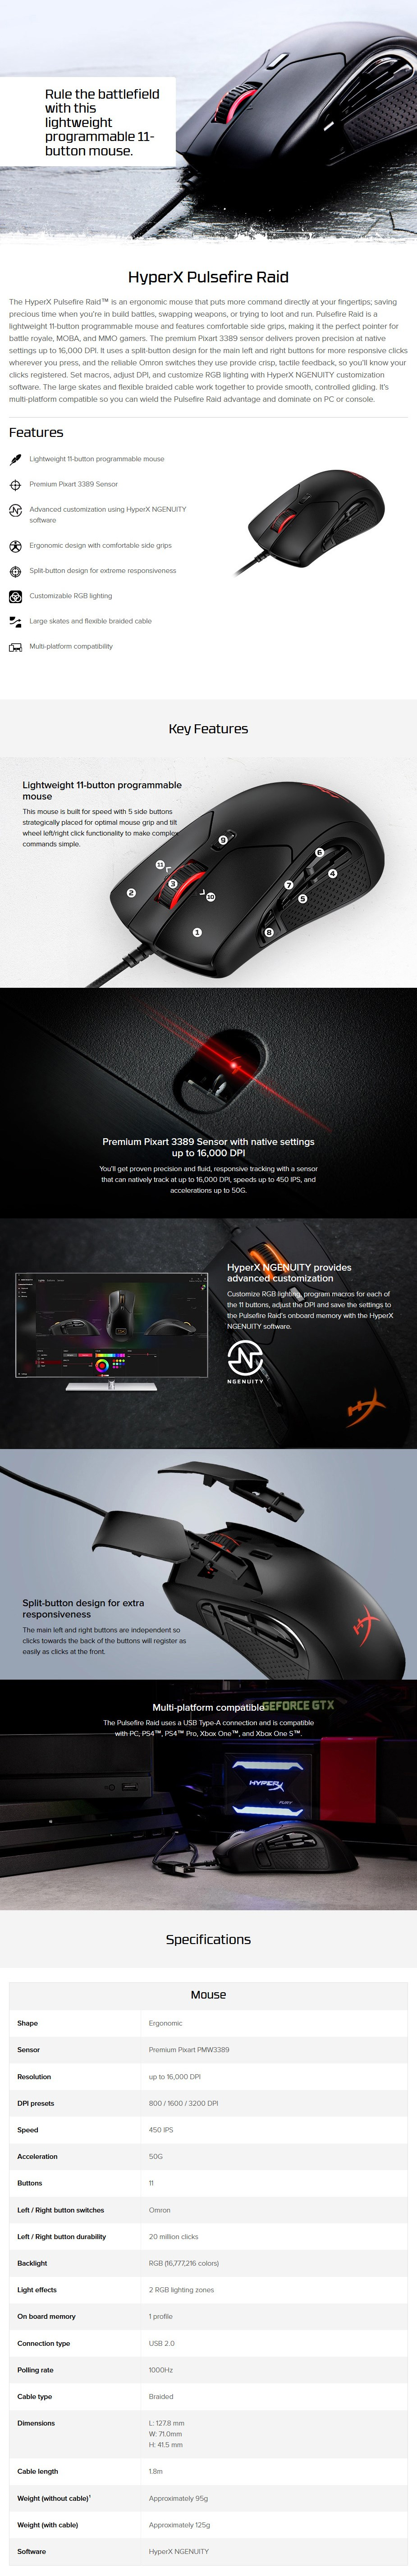 HyperX Pulsefire Raid Optical Gaming Mouse - Overview 1